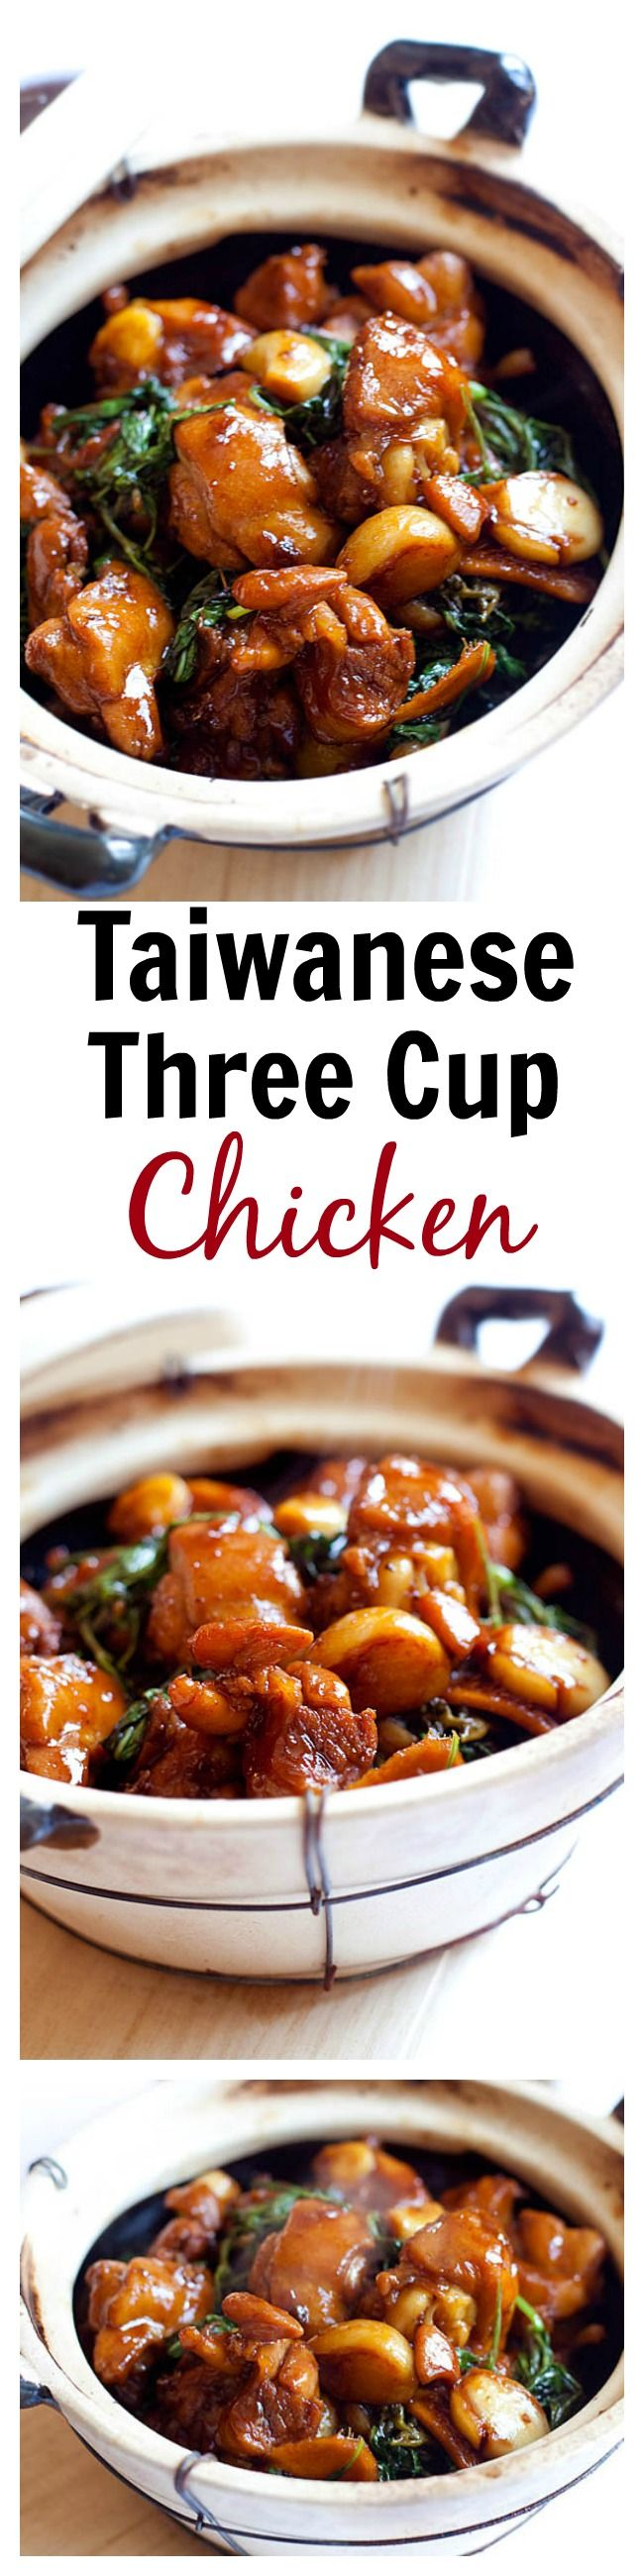 Three Cup Chicken | Easy Delicious Recipes